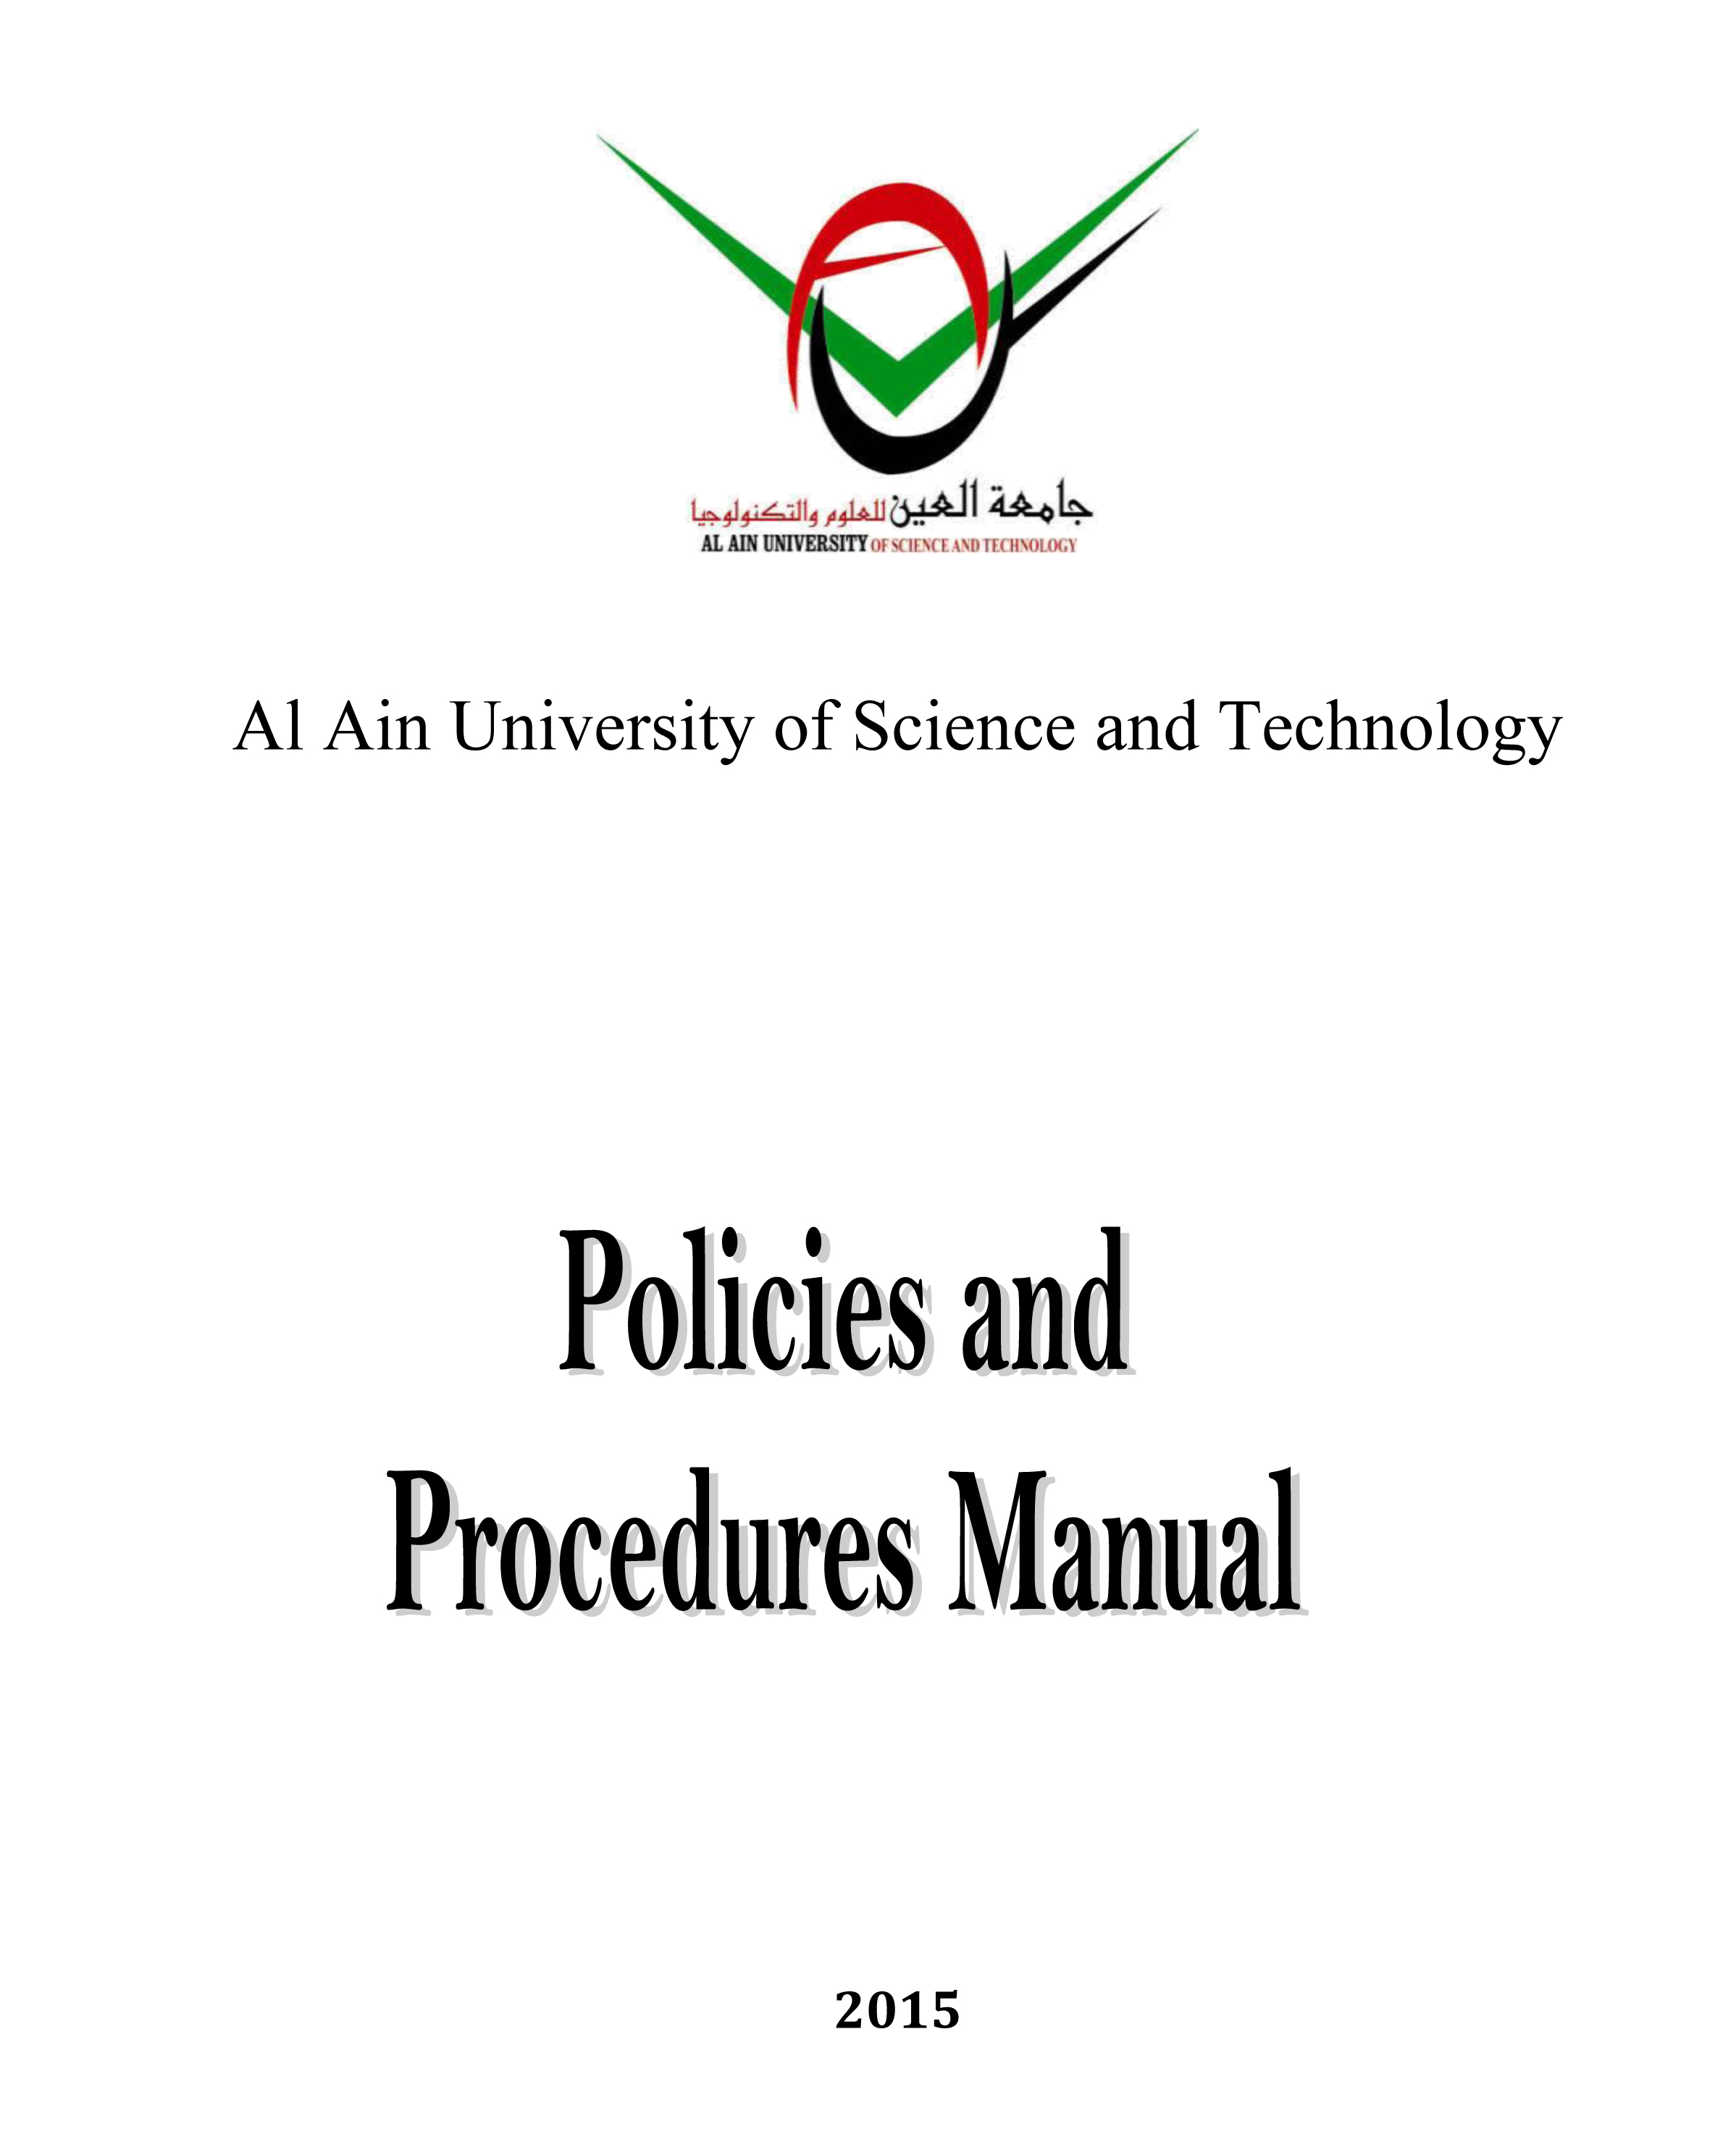 staff policies and procedures manual